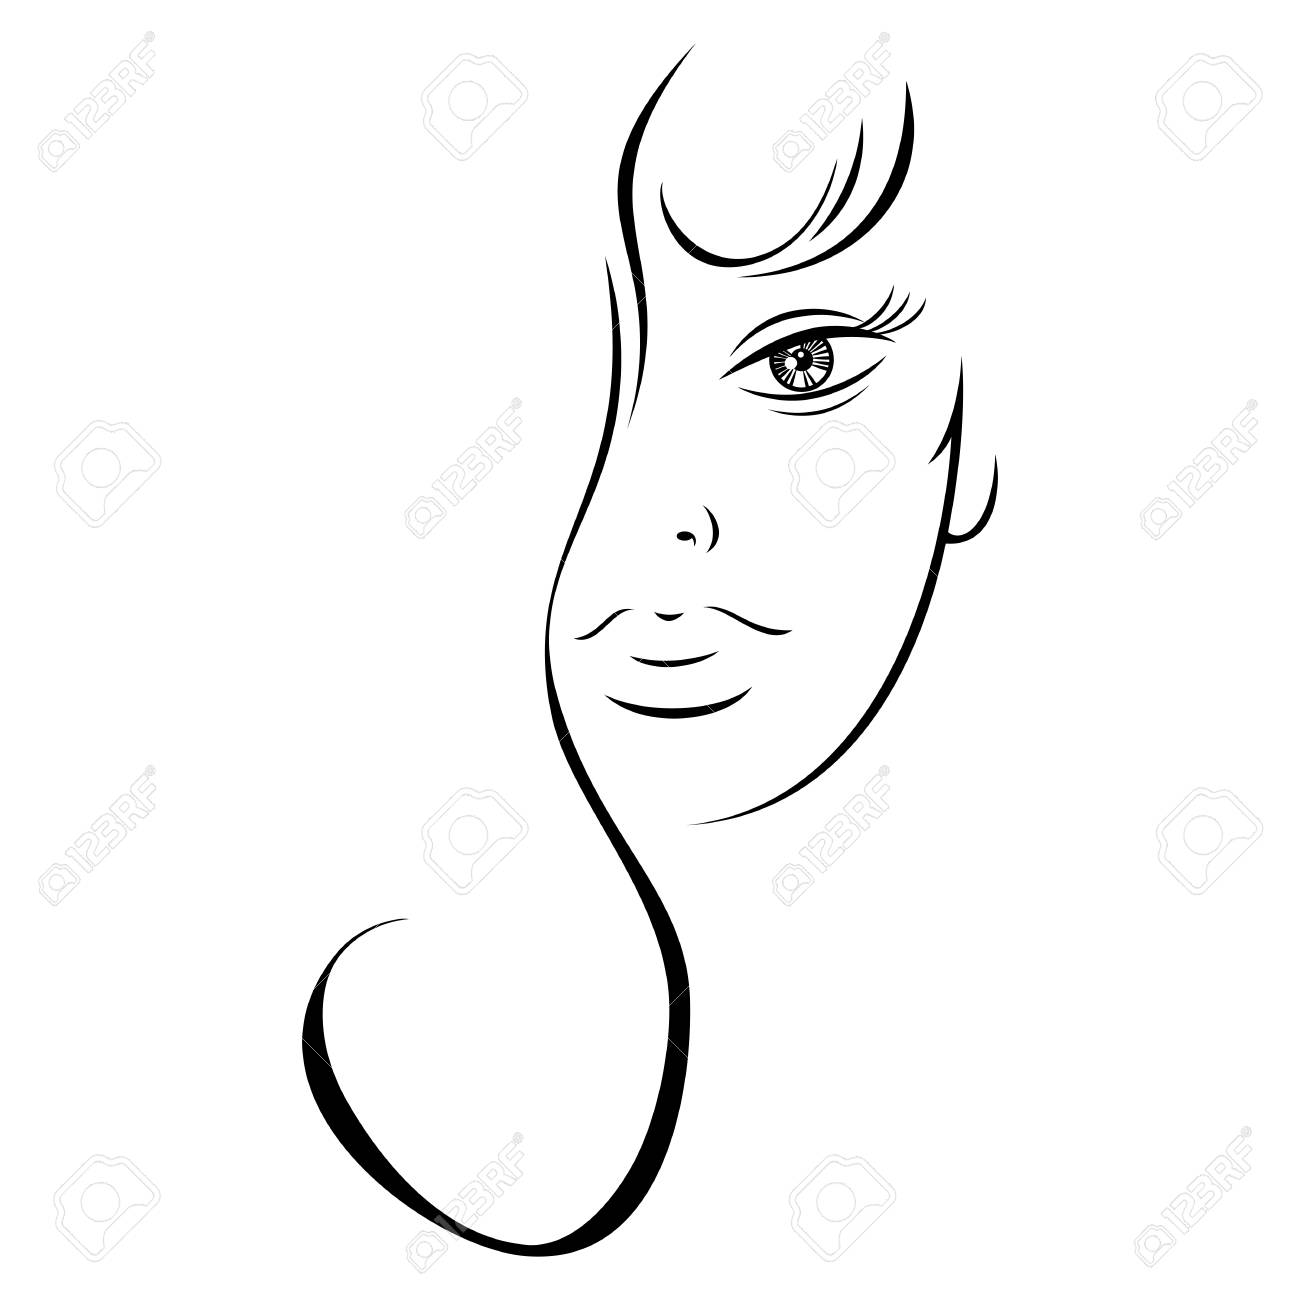 Contour drawing sensual woman face with long hair